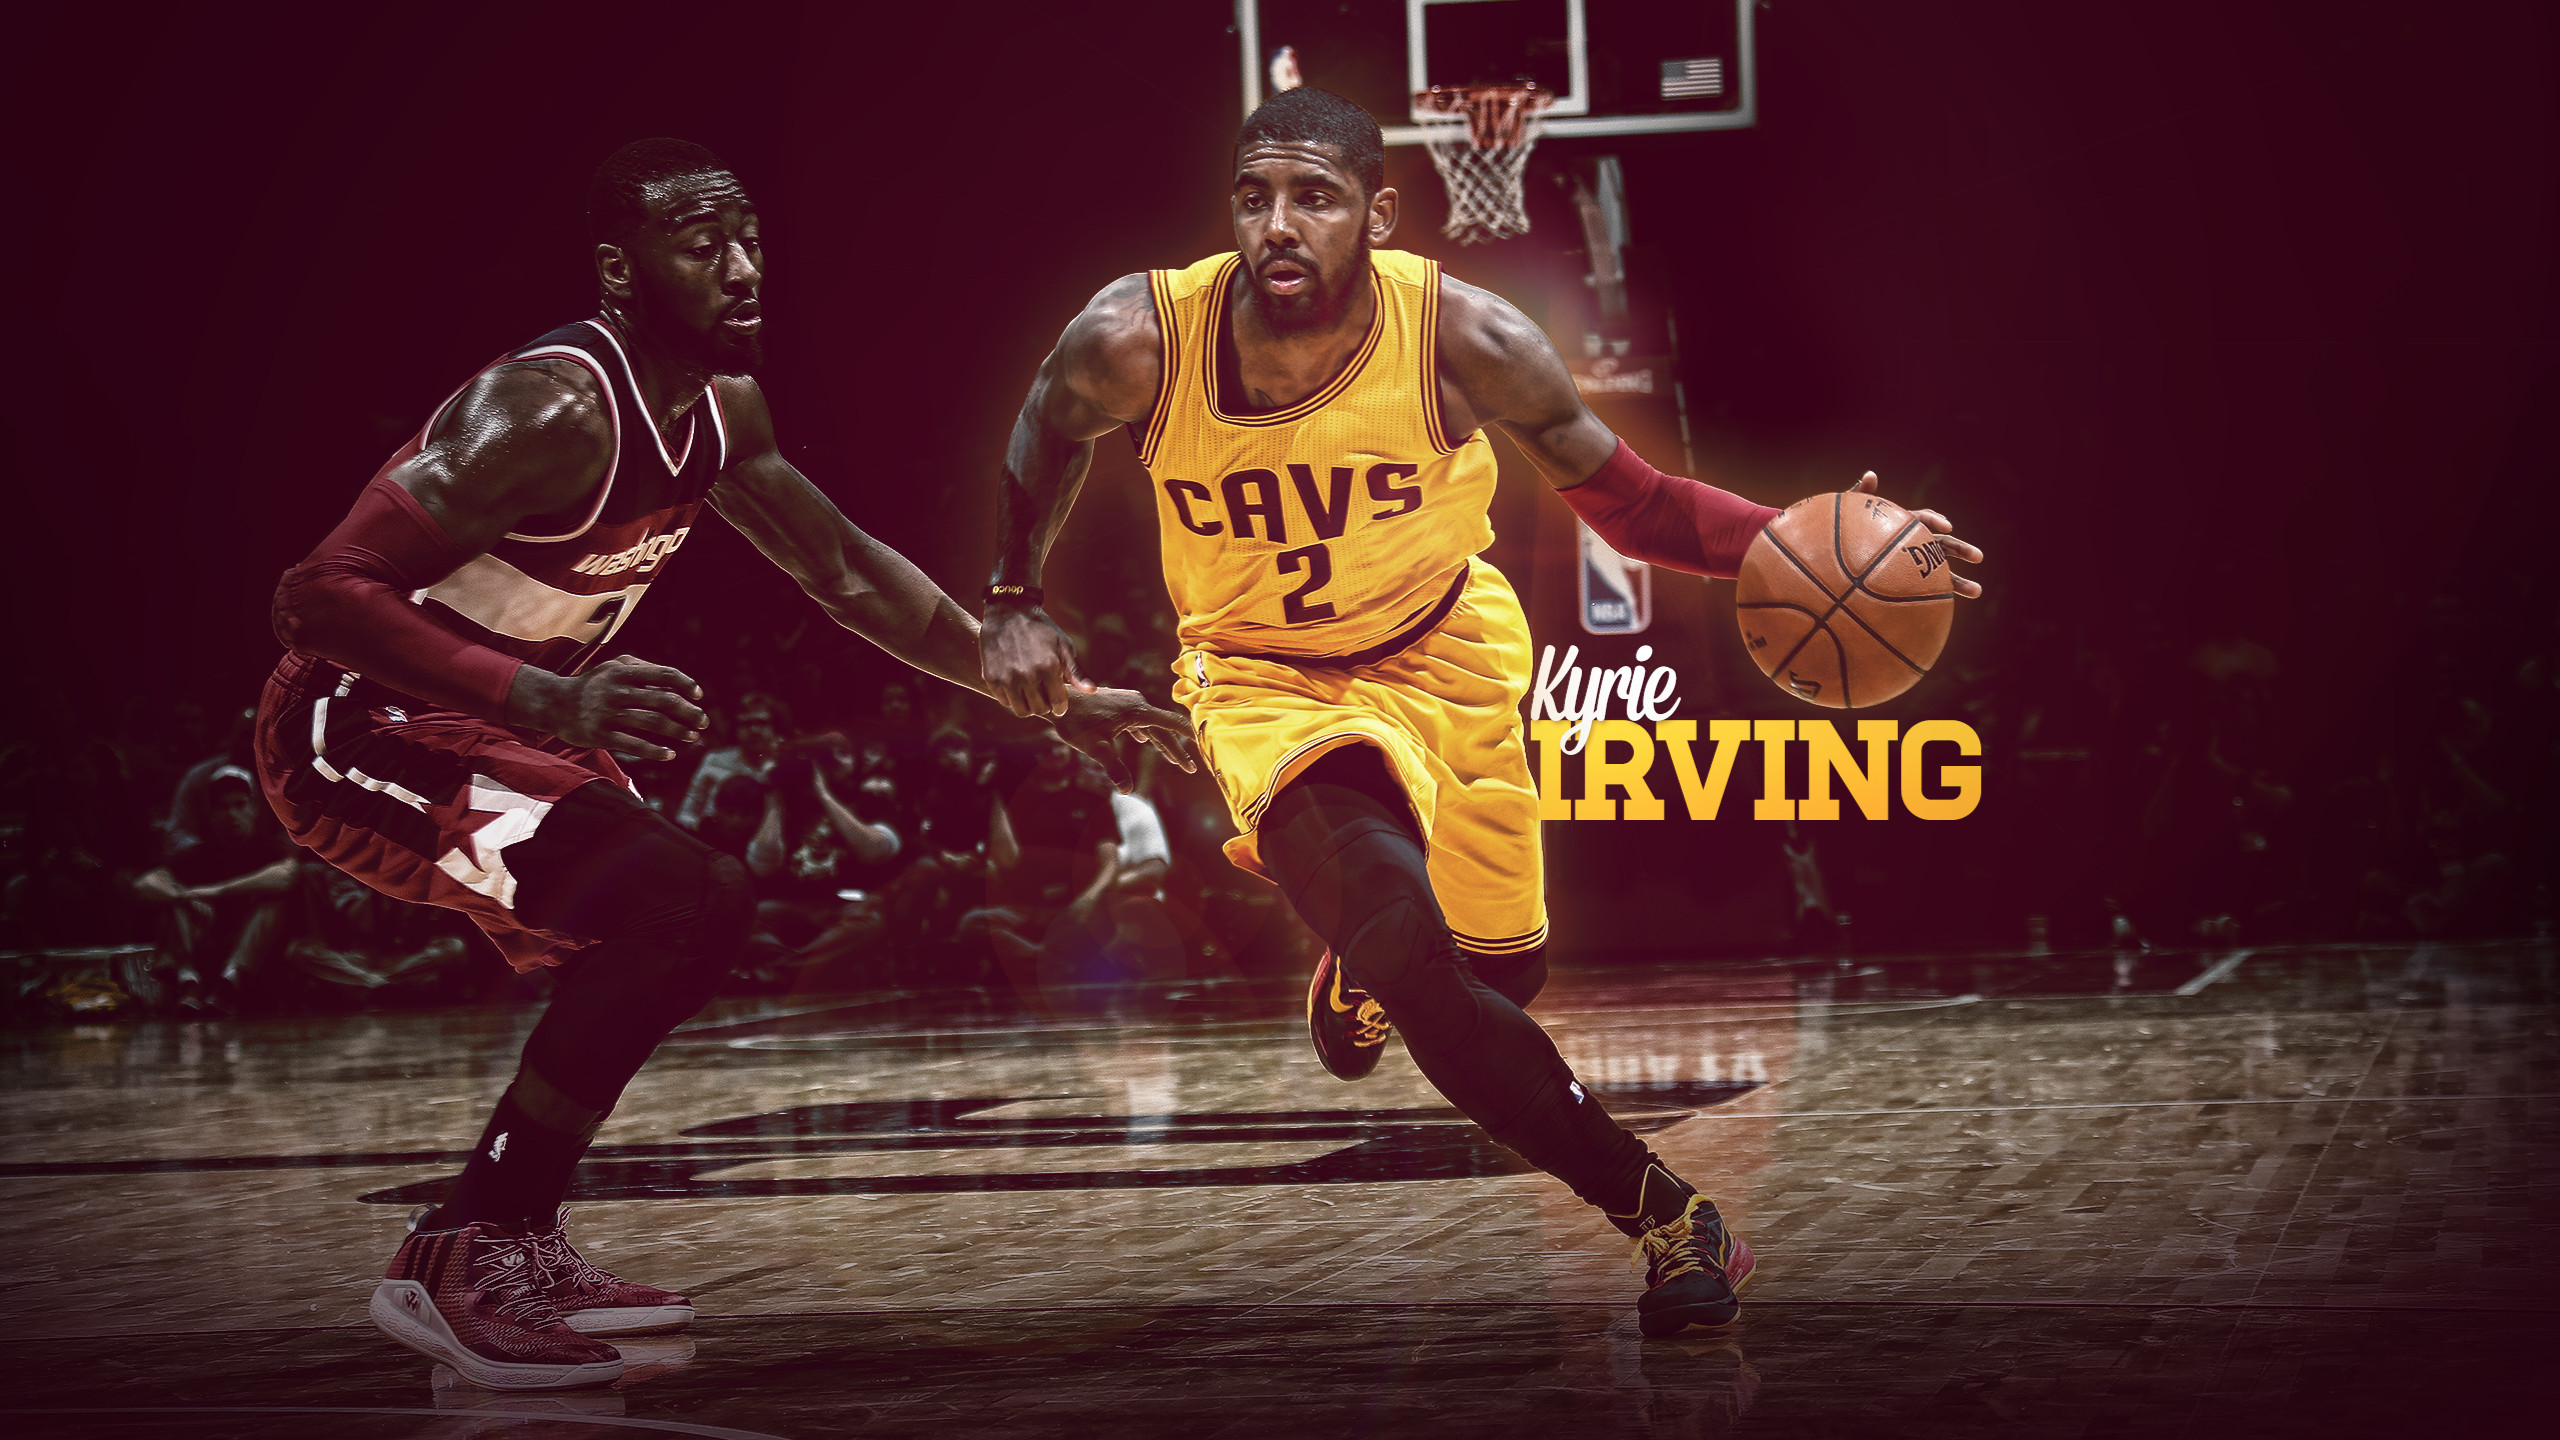 Res: 2560x1440, Kyrie Irving